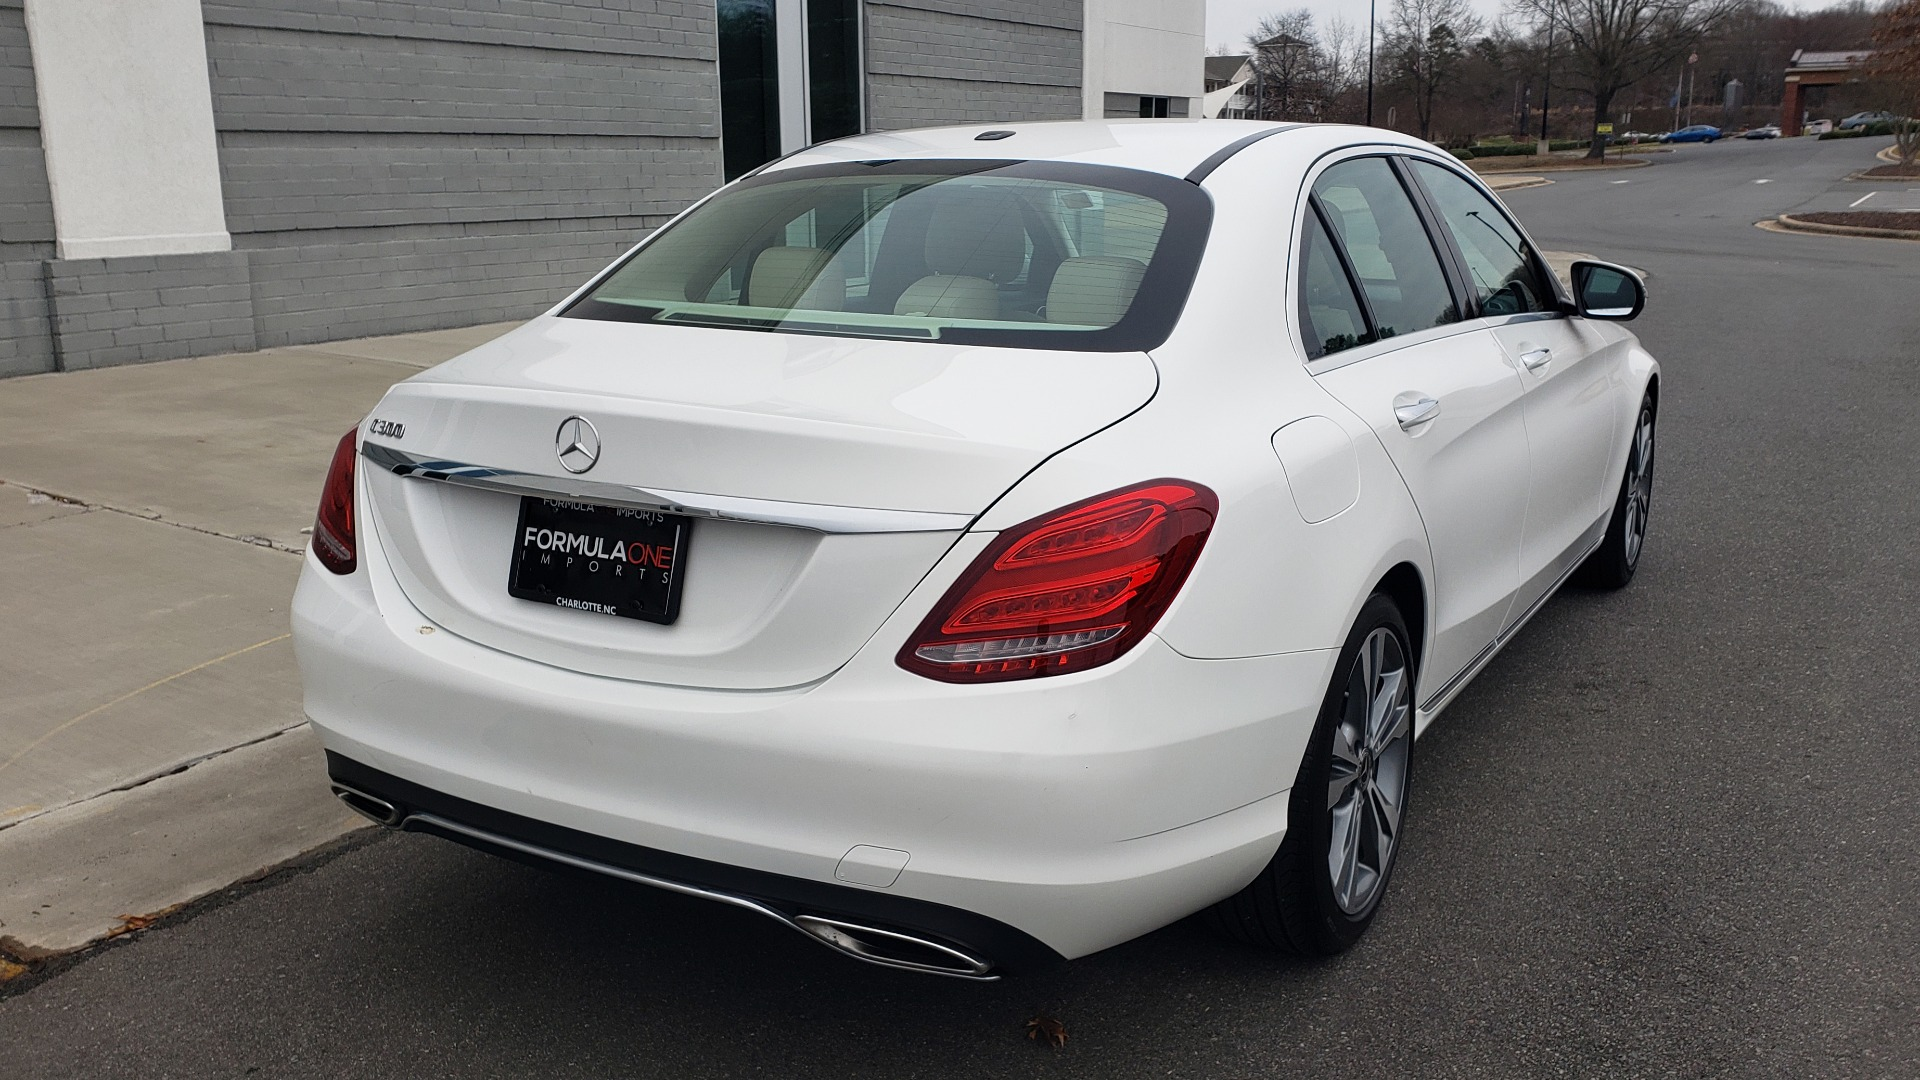 Used 2018 Mercedes-Benz C-CLASS C 300 PREMIUM / NAV / HTD STS / APPLE CARPLAY / REARVIEW for sale Sold at Formula Imports in Charlotte NC 28227 5